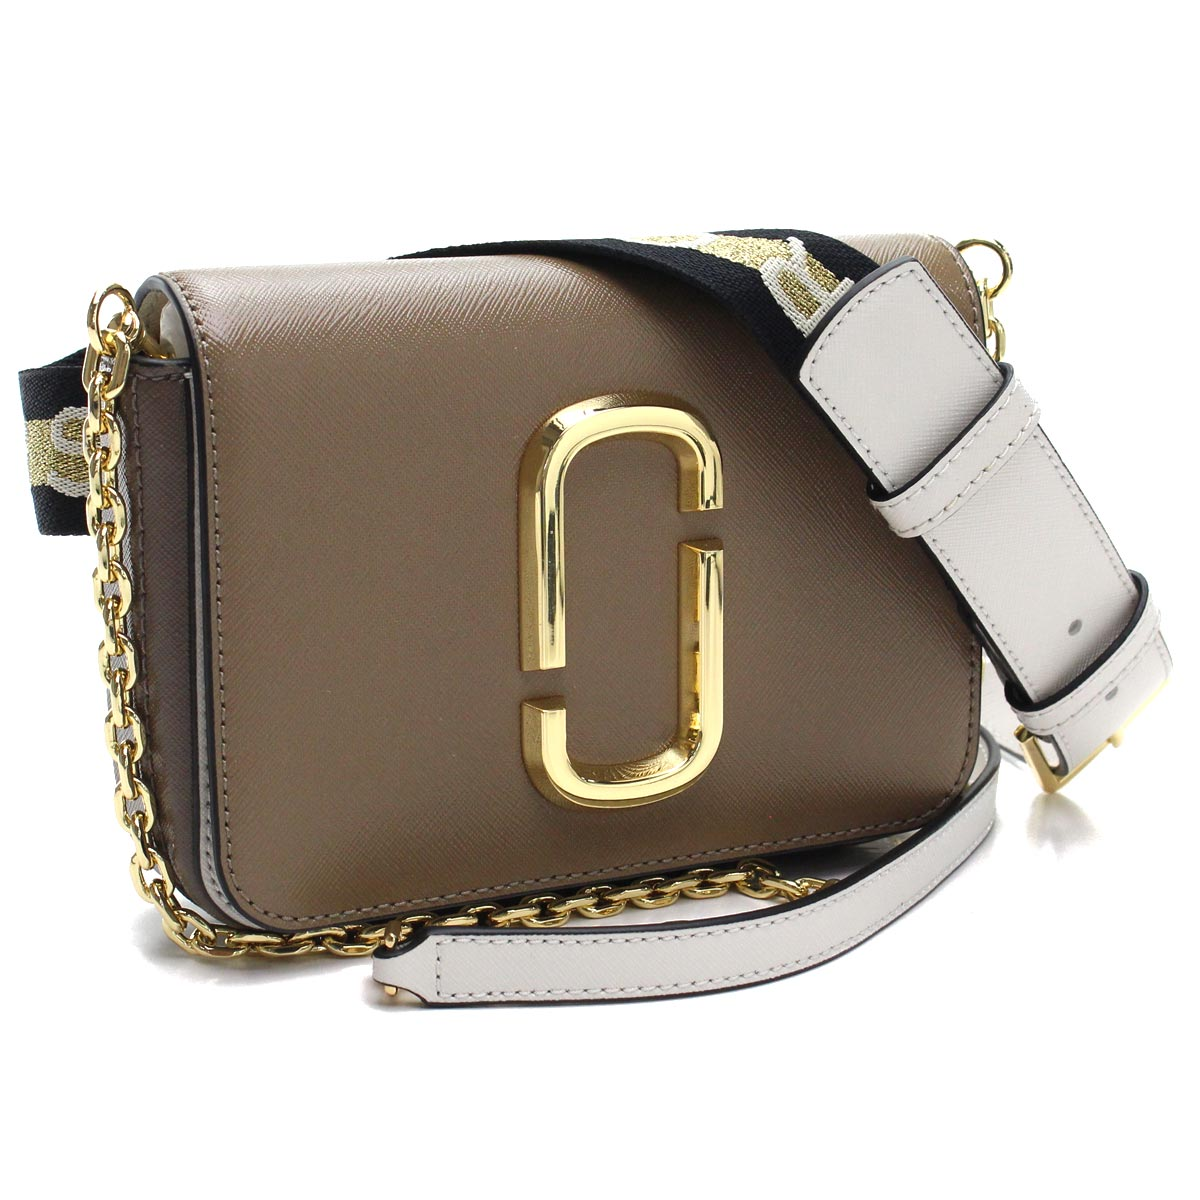 18cb536bb59f8 Bighit The total brand wholesale: Multicolored Lady's of mark Jacobs MARC  JACOBS hips shot waist bag belt bag M0014319 064 FRENCH GREY MULTI Brown  line ...